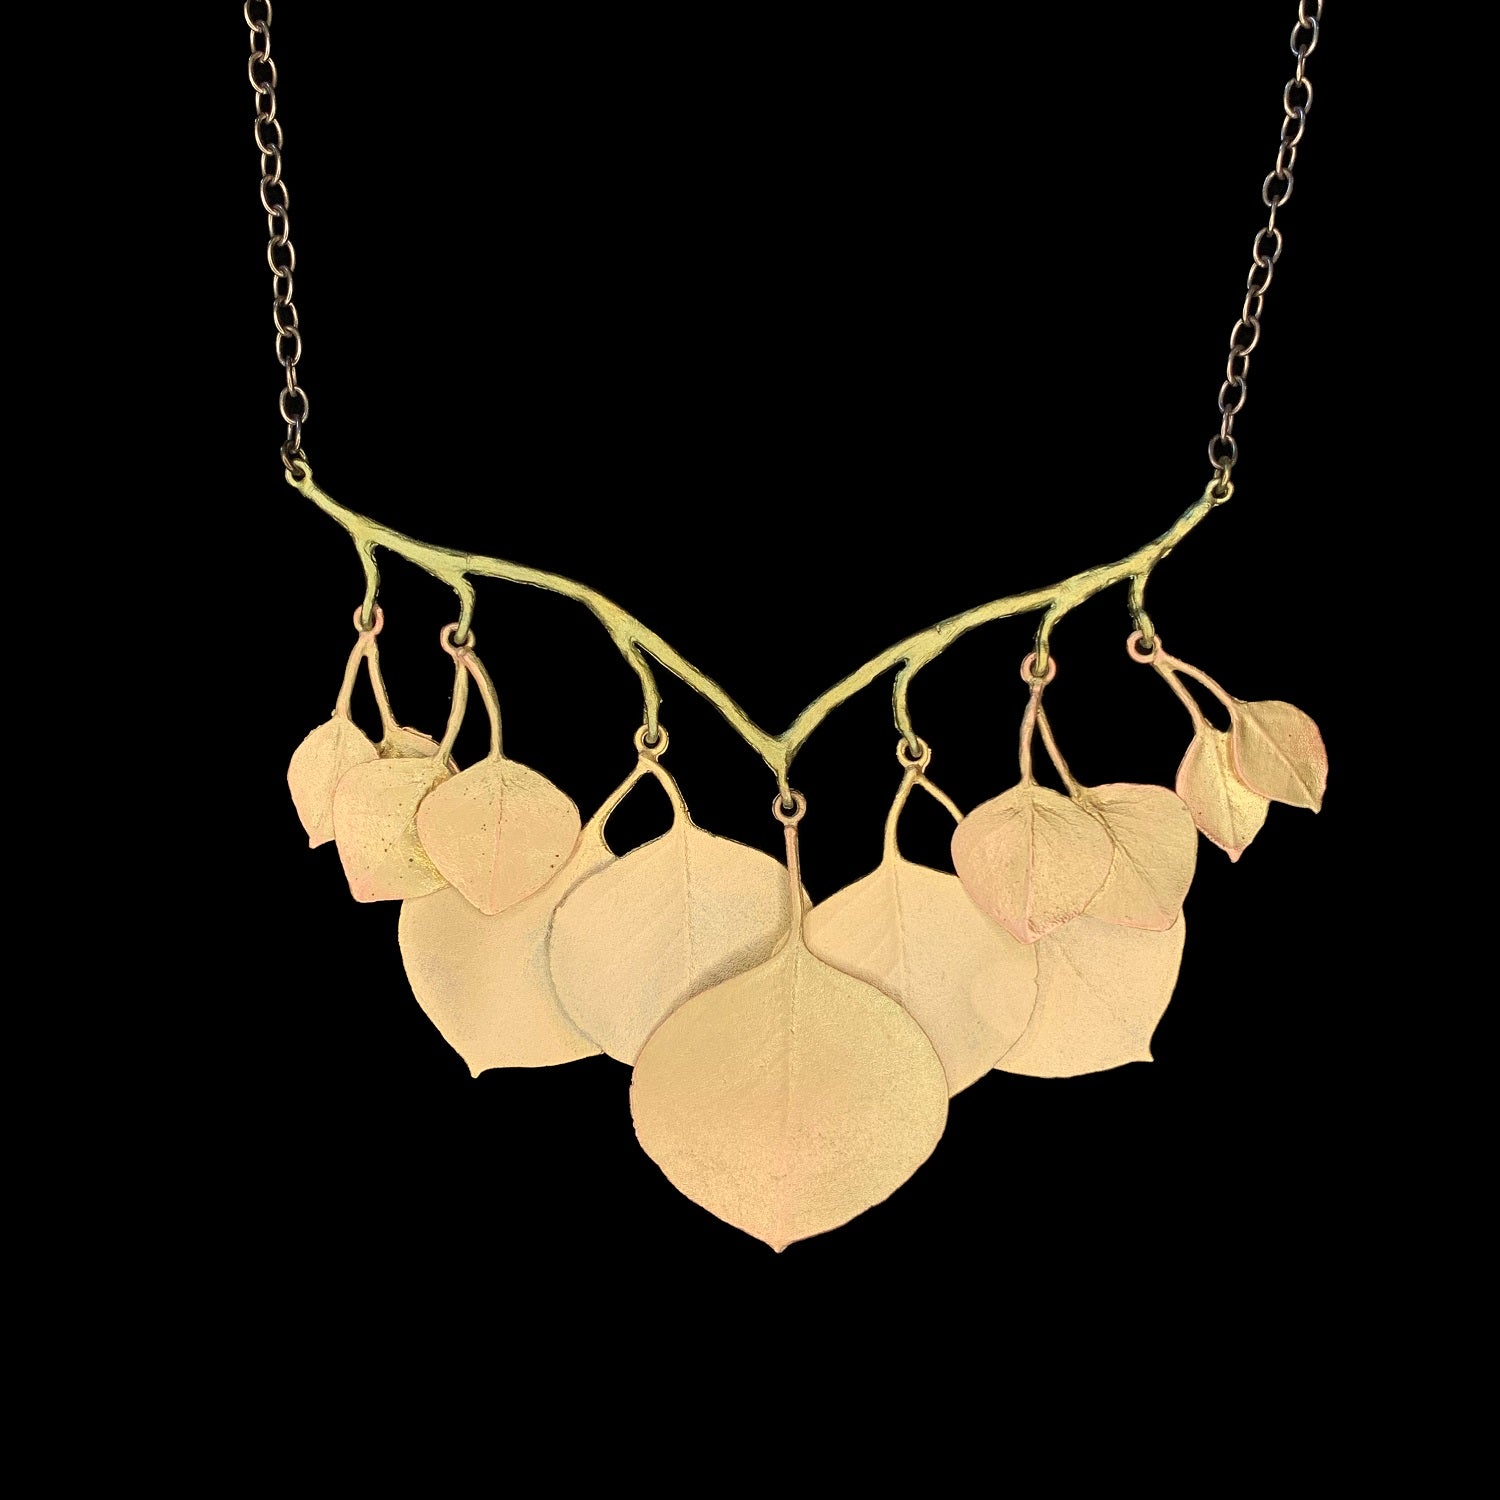 Round Leaf Eucalyptus Necklace - Branch